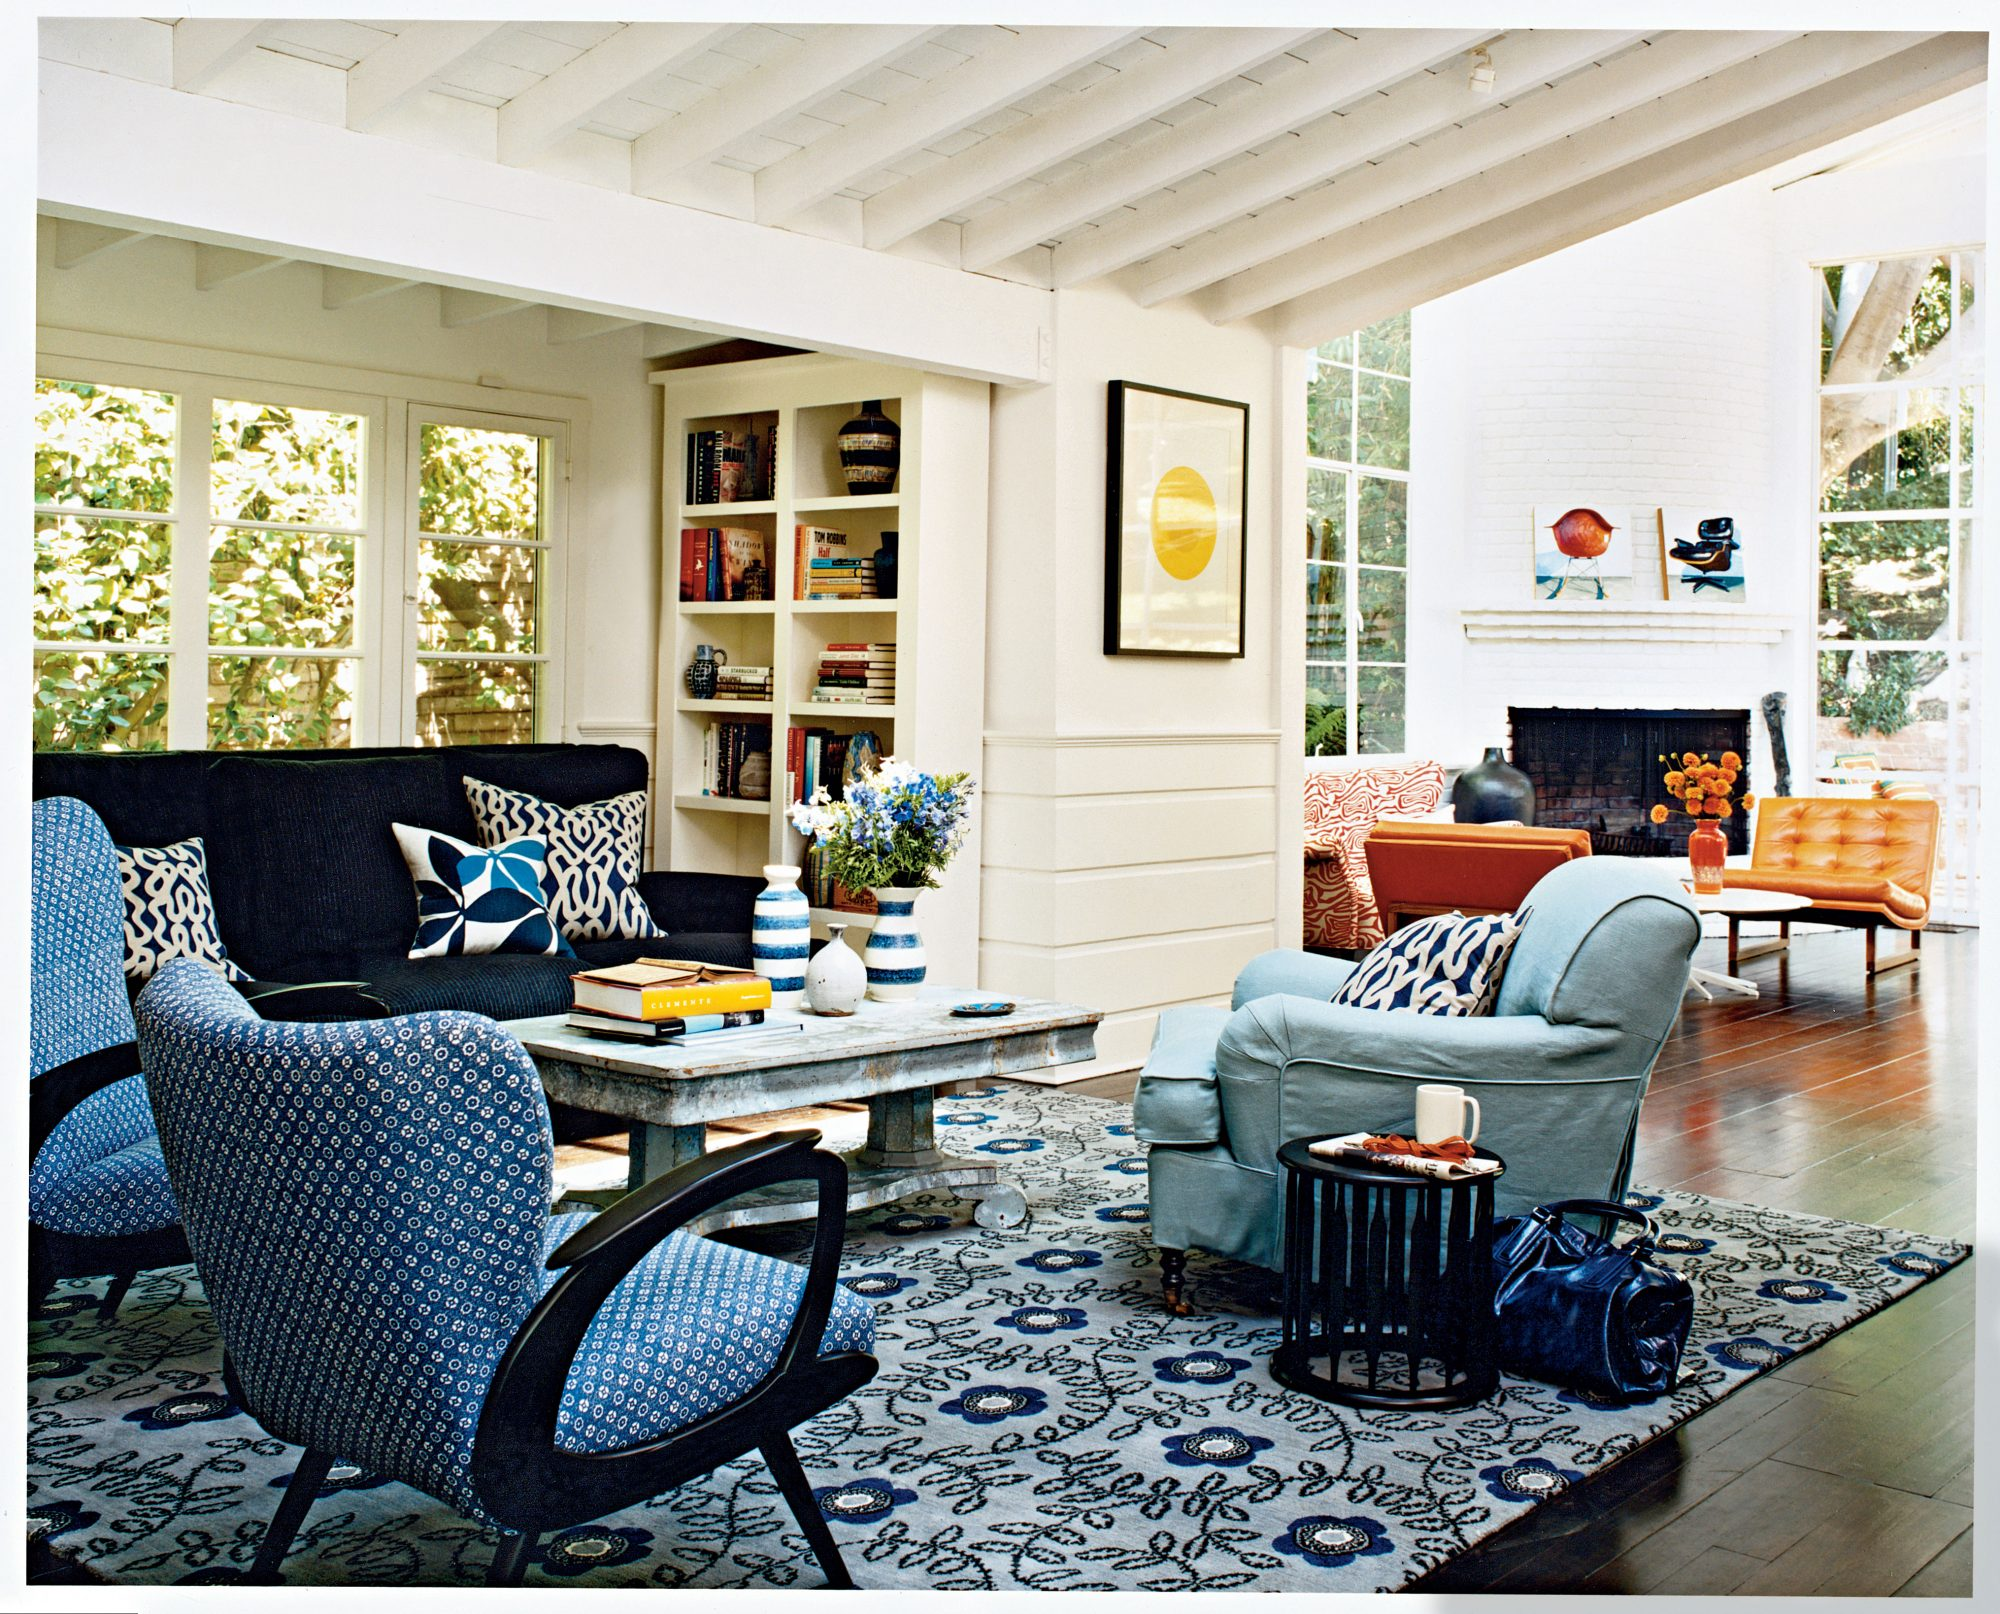 When using a single color, stick with white walls and ceilings to keep from overdoing it. Vary the patterns and hues as well to prevent the look from being too monochromatic.